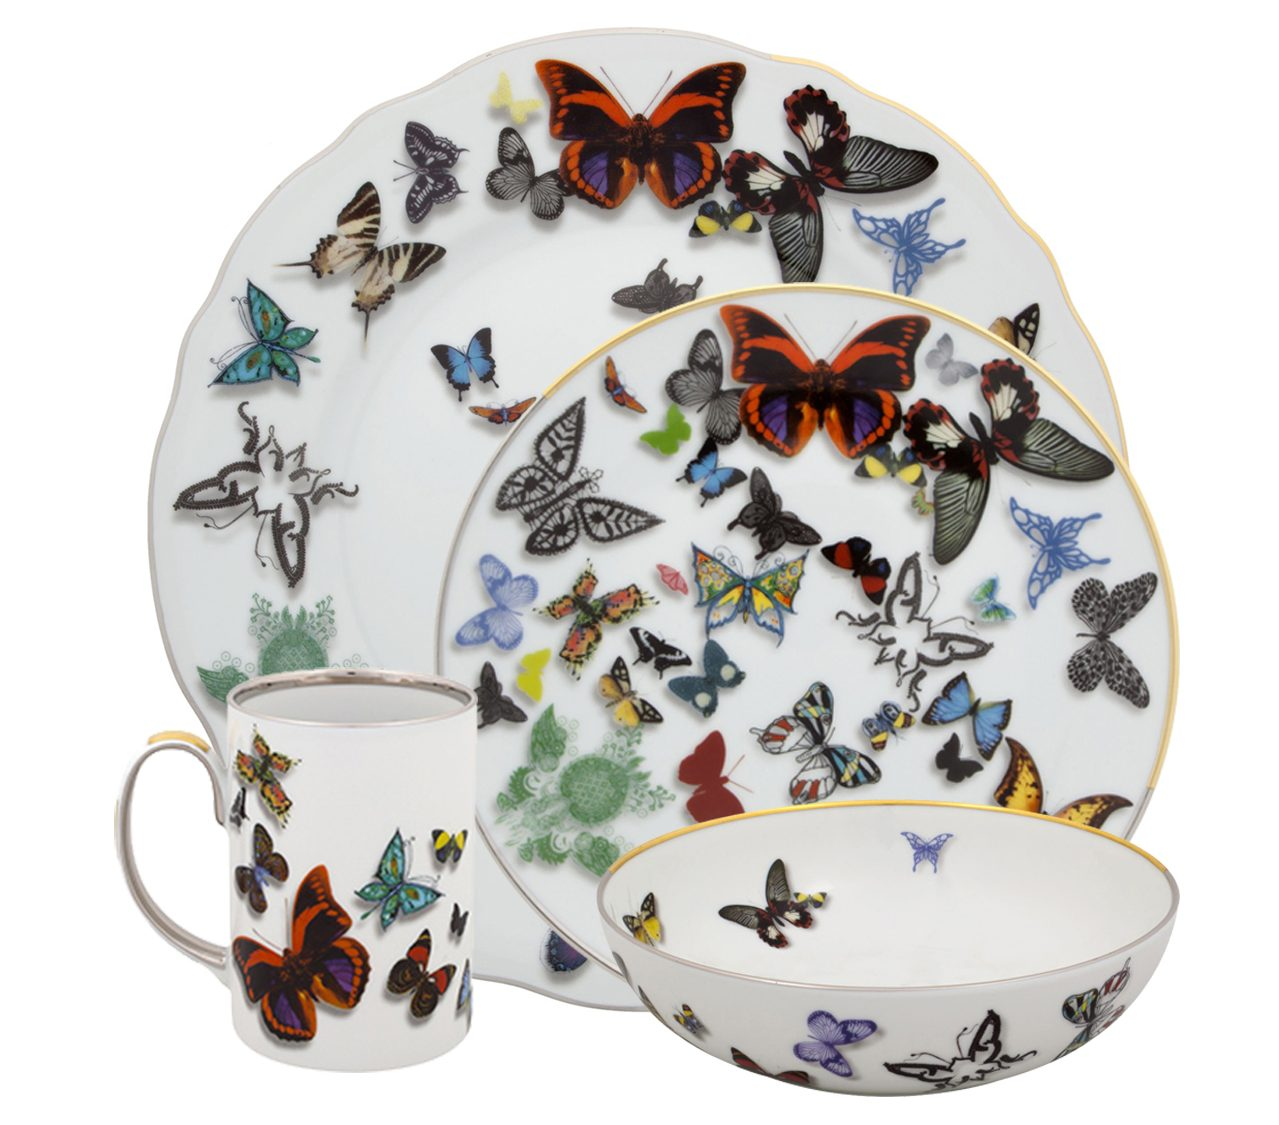 Vista Alegre butterfly parade christian lacroix butterfly parade luxury dinnerware - luxury tableware - luxury table setting ideas